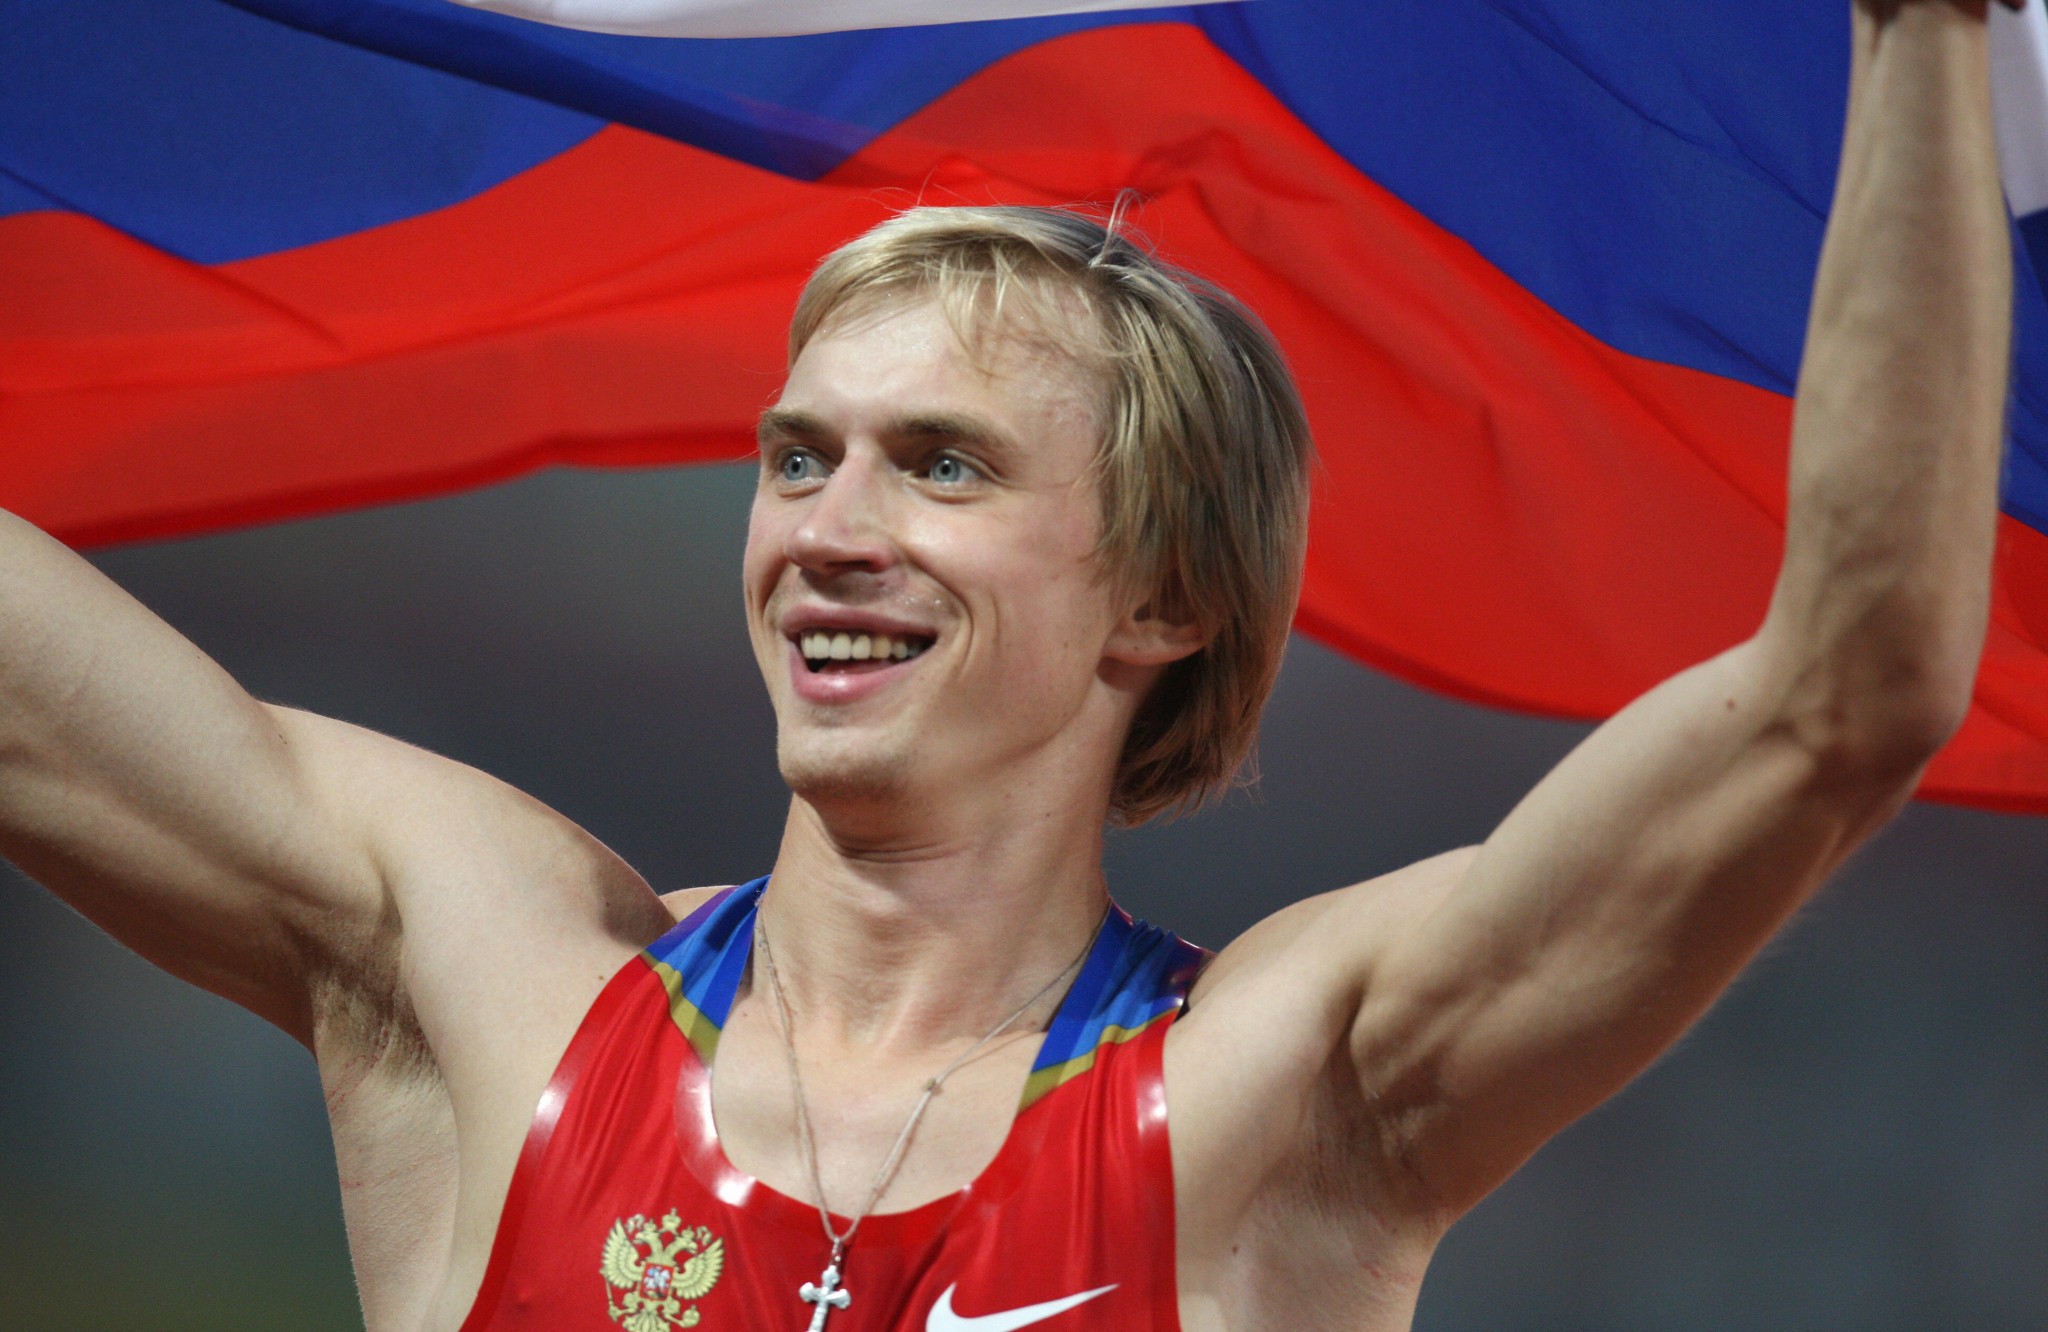 Andrei Silnov won Olympic high jump gold medal at Beijing 2008 ©Getty Images